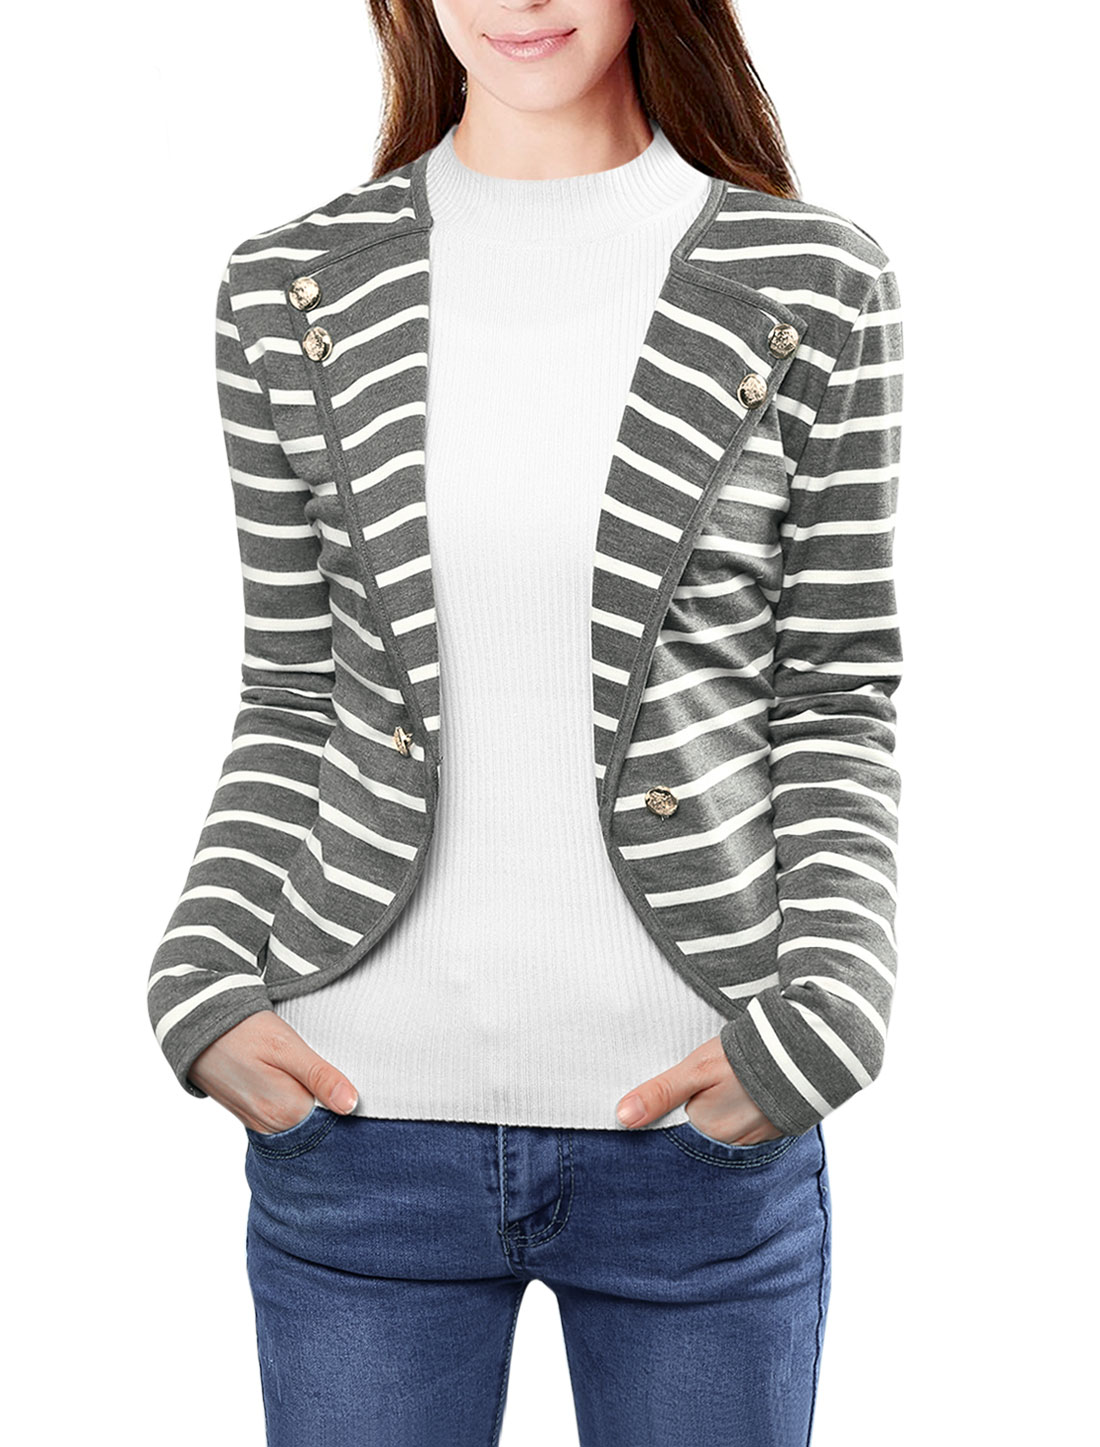 Ladies Notched Lapel Button Decor Striped Blazer Gray White M